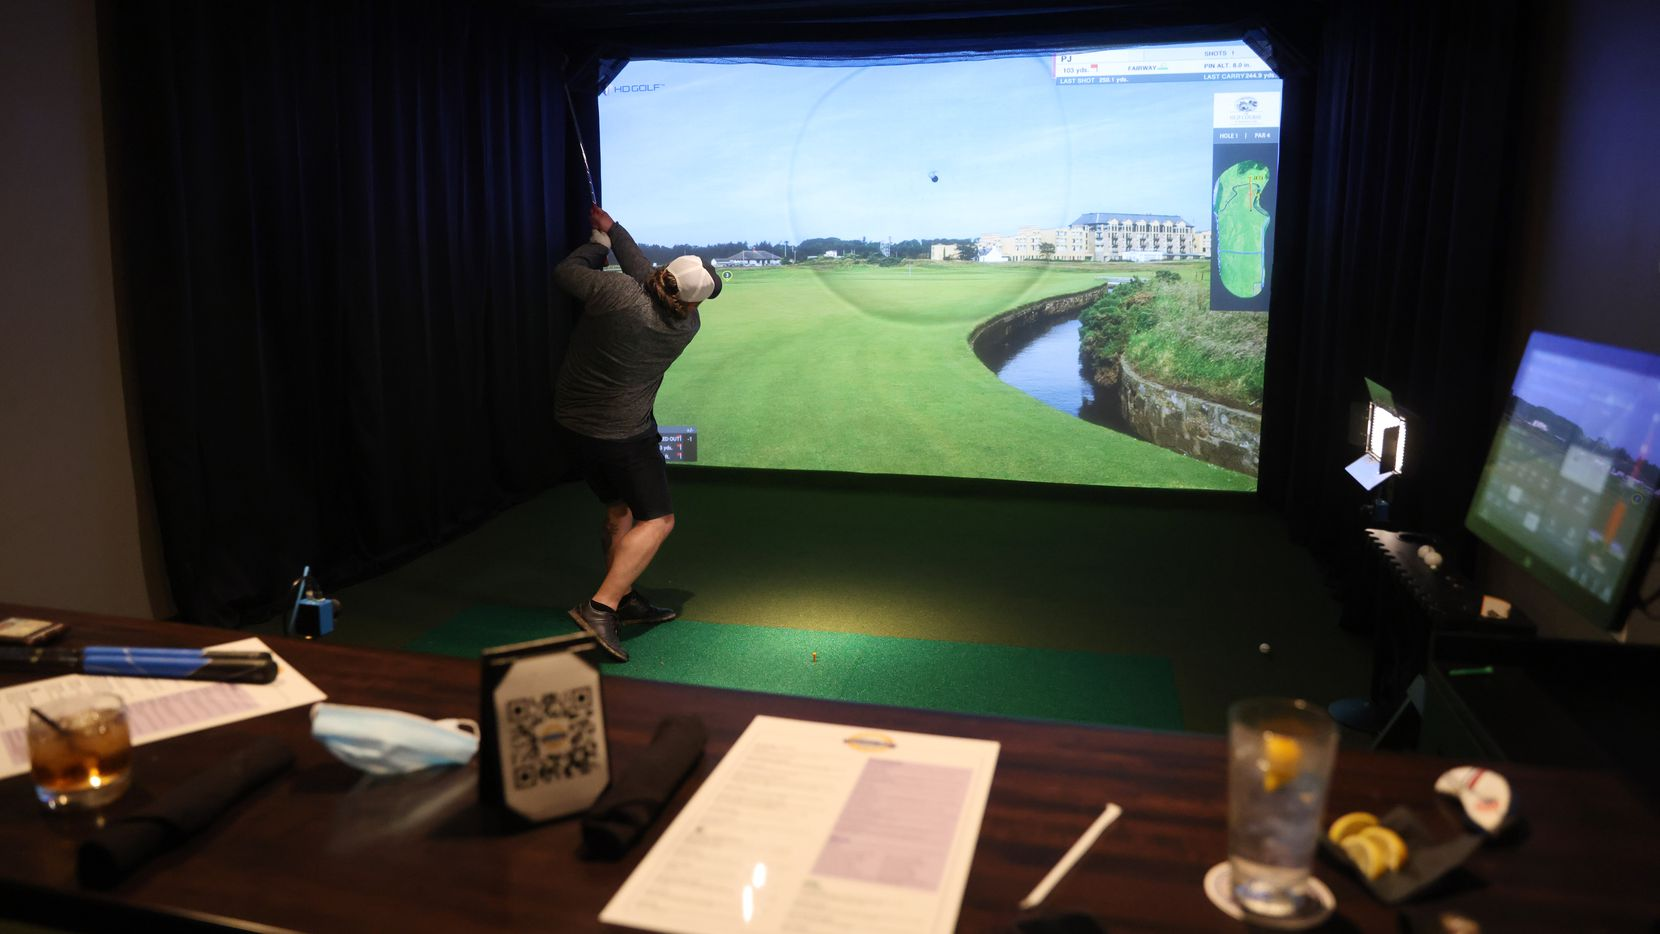 PJ Spielman plays virtual golf in one of five simulators at Daylight Golf on Thursday, January 21, 2021in Grapevine, Texas.